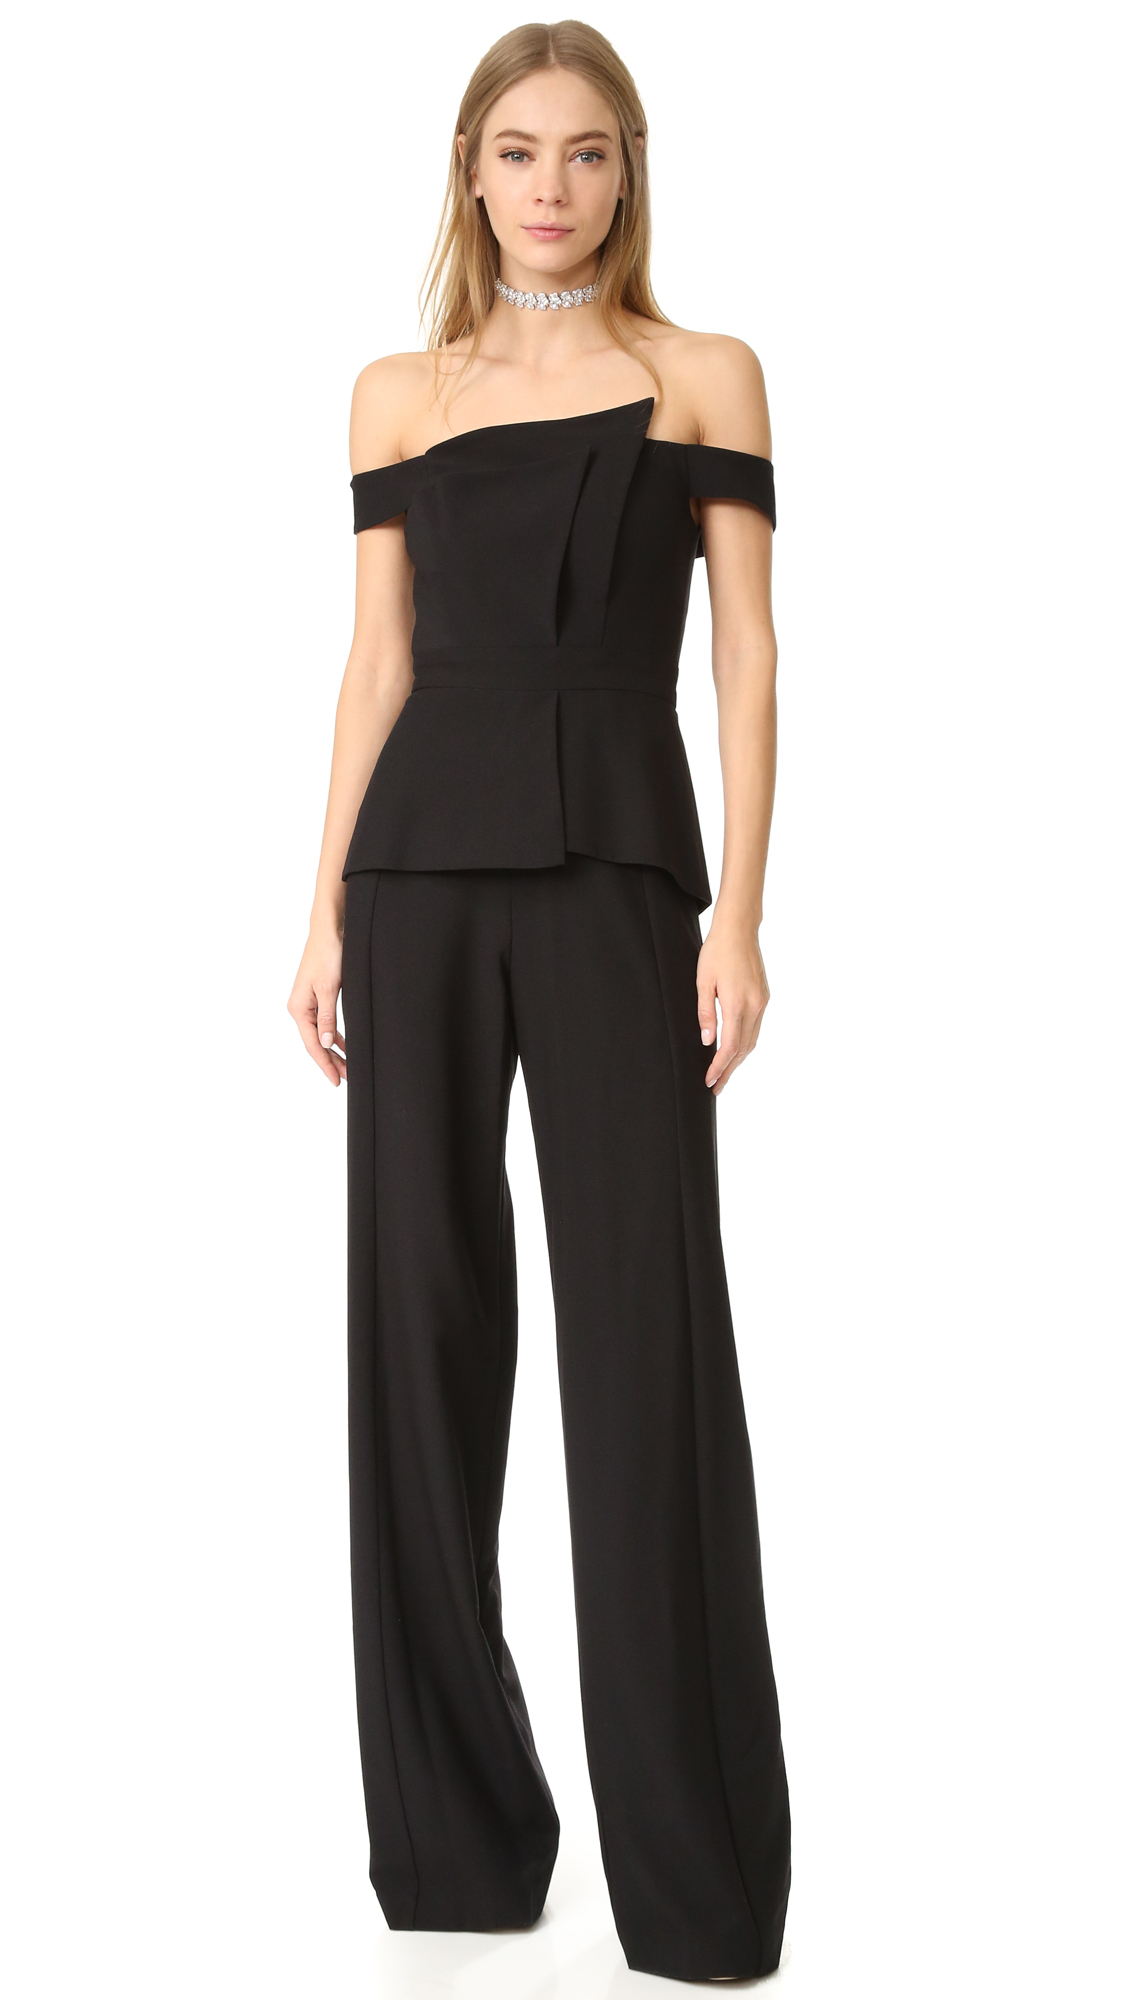 Black Halo La Reina Jumpsuit - Black